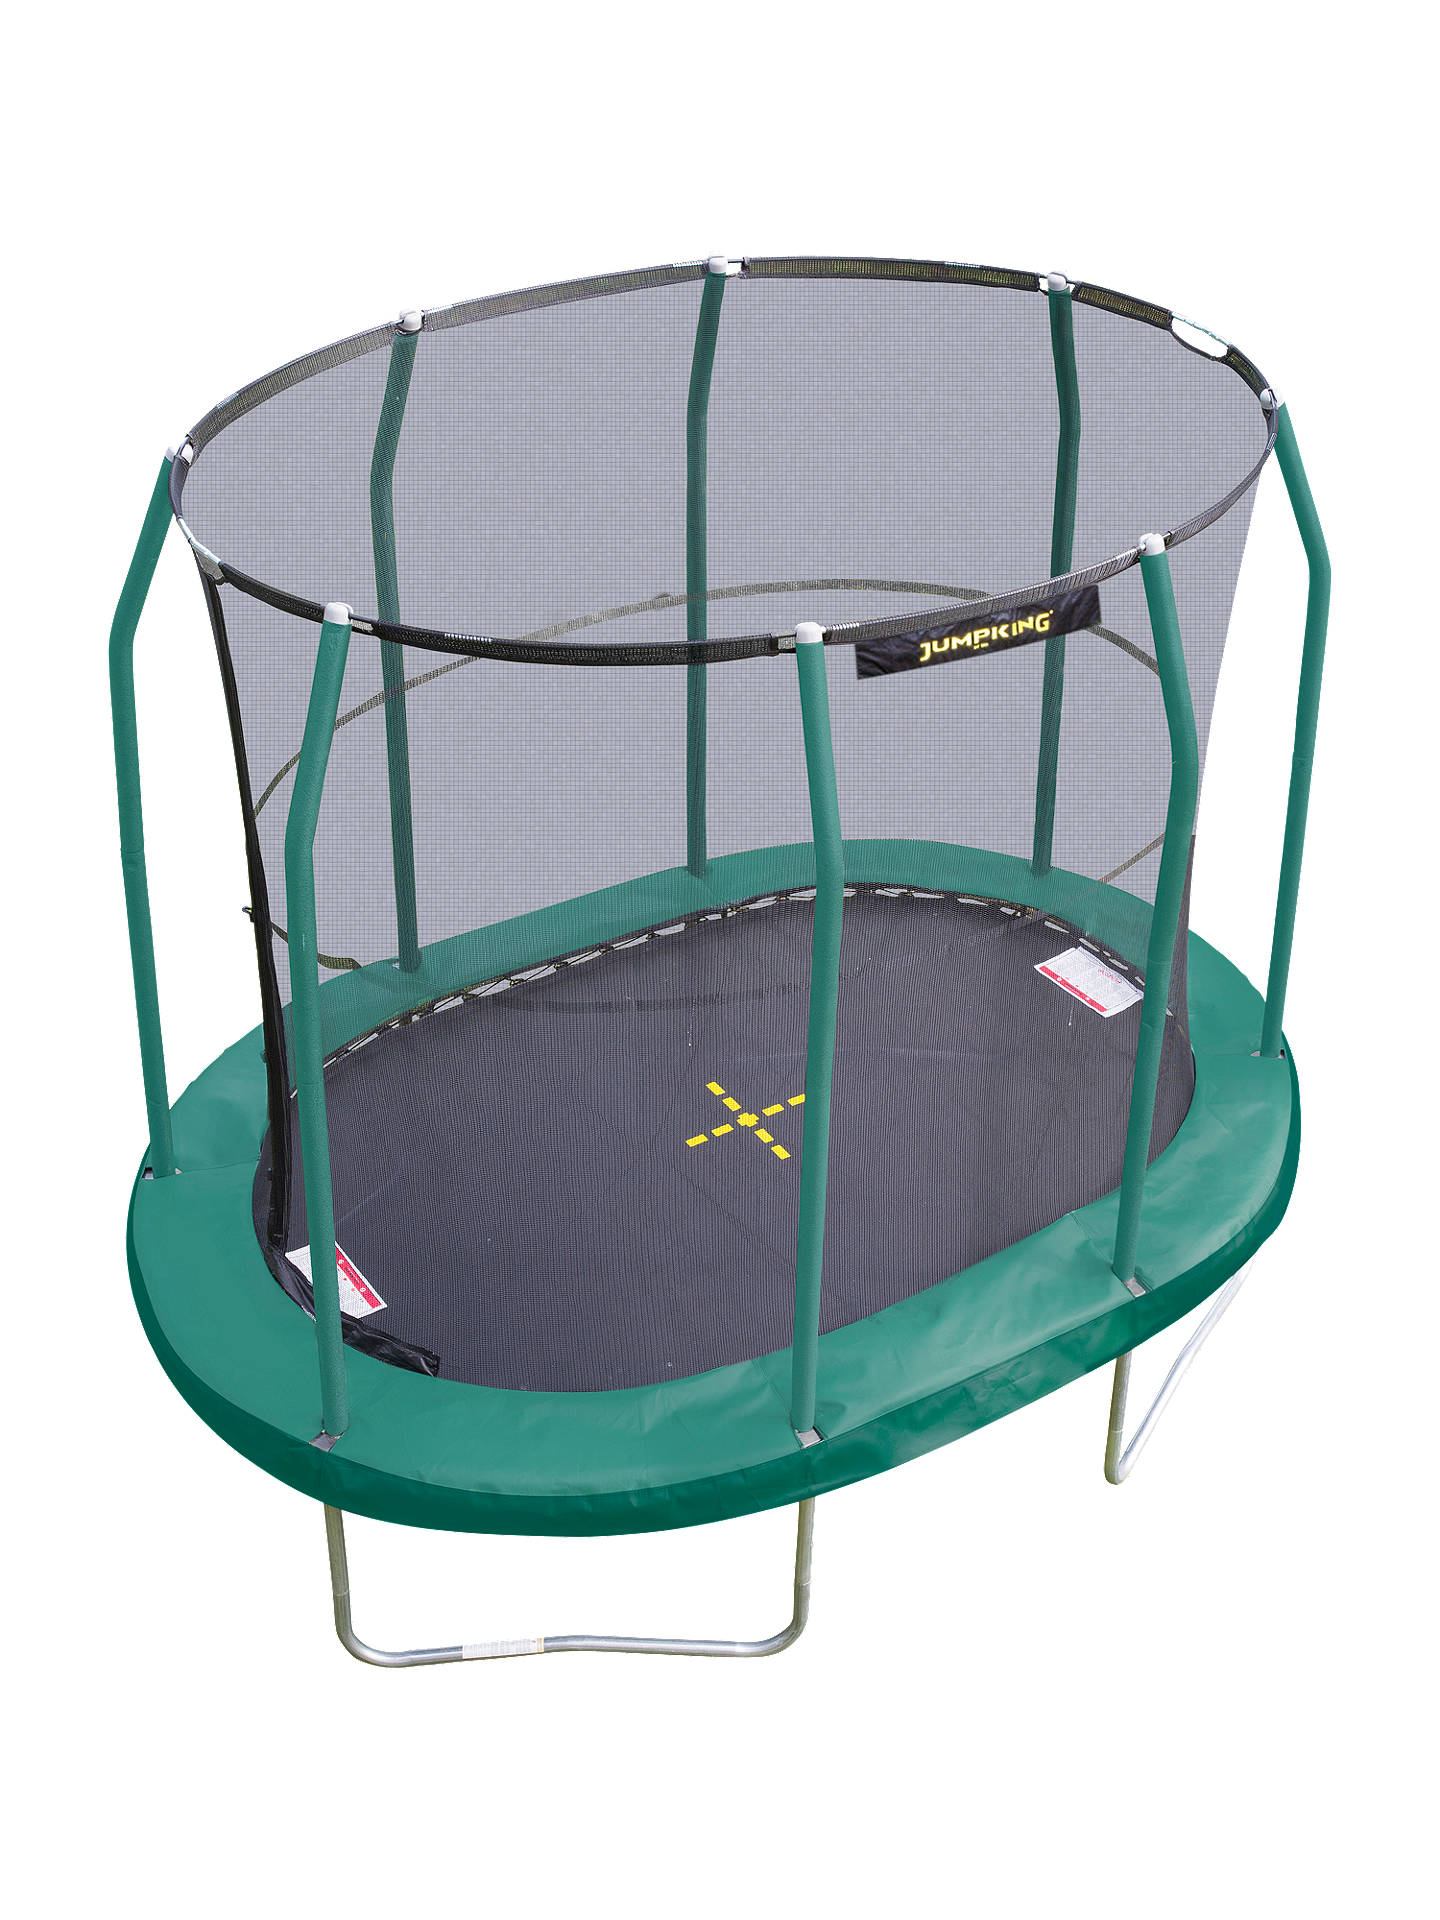 JumpKing 7 x 10ft Oval Trampoline at John Lewis & Partners